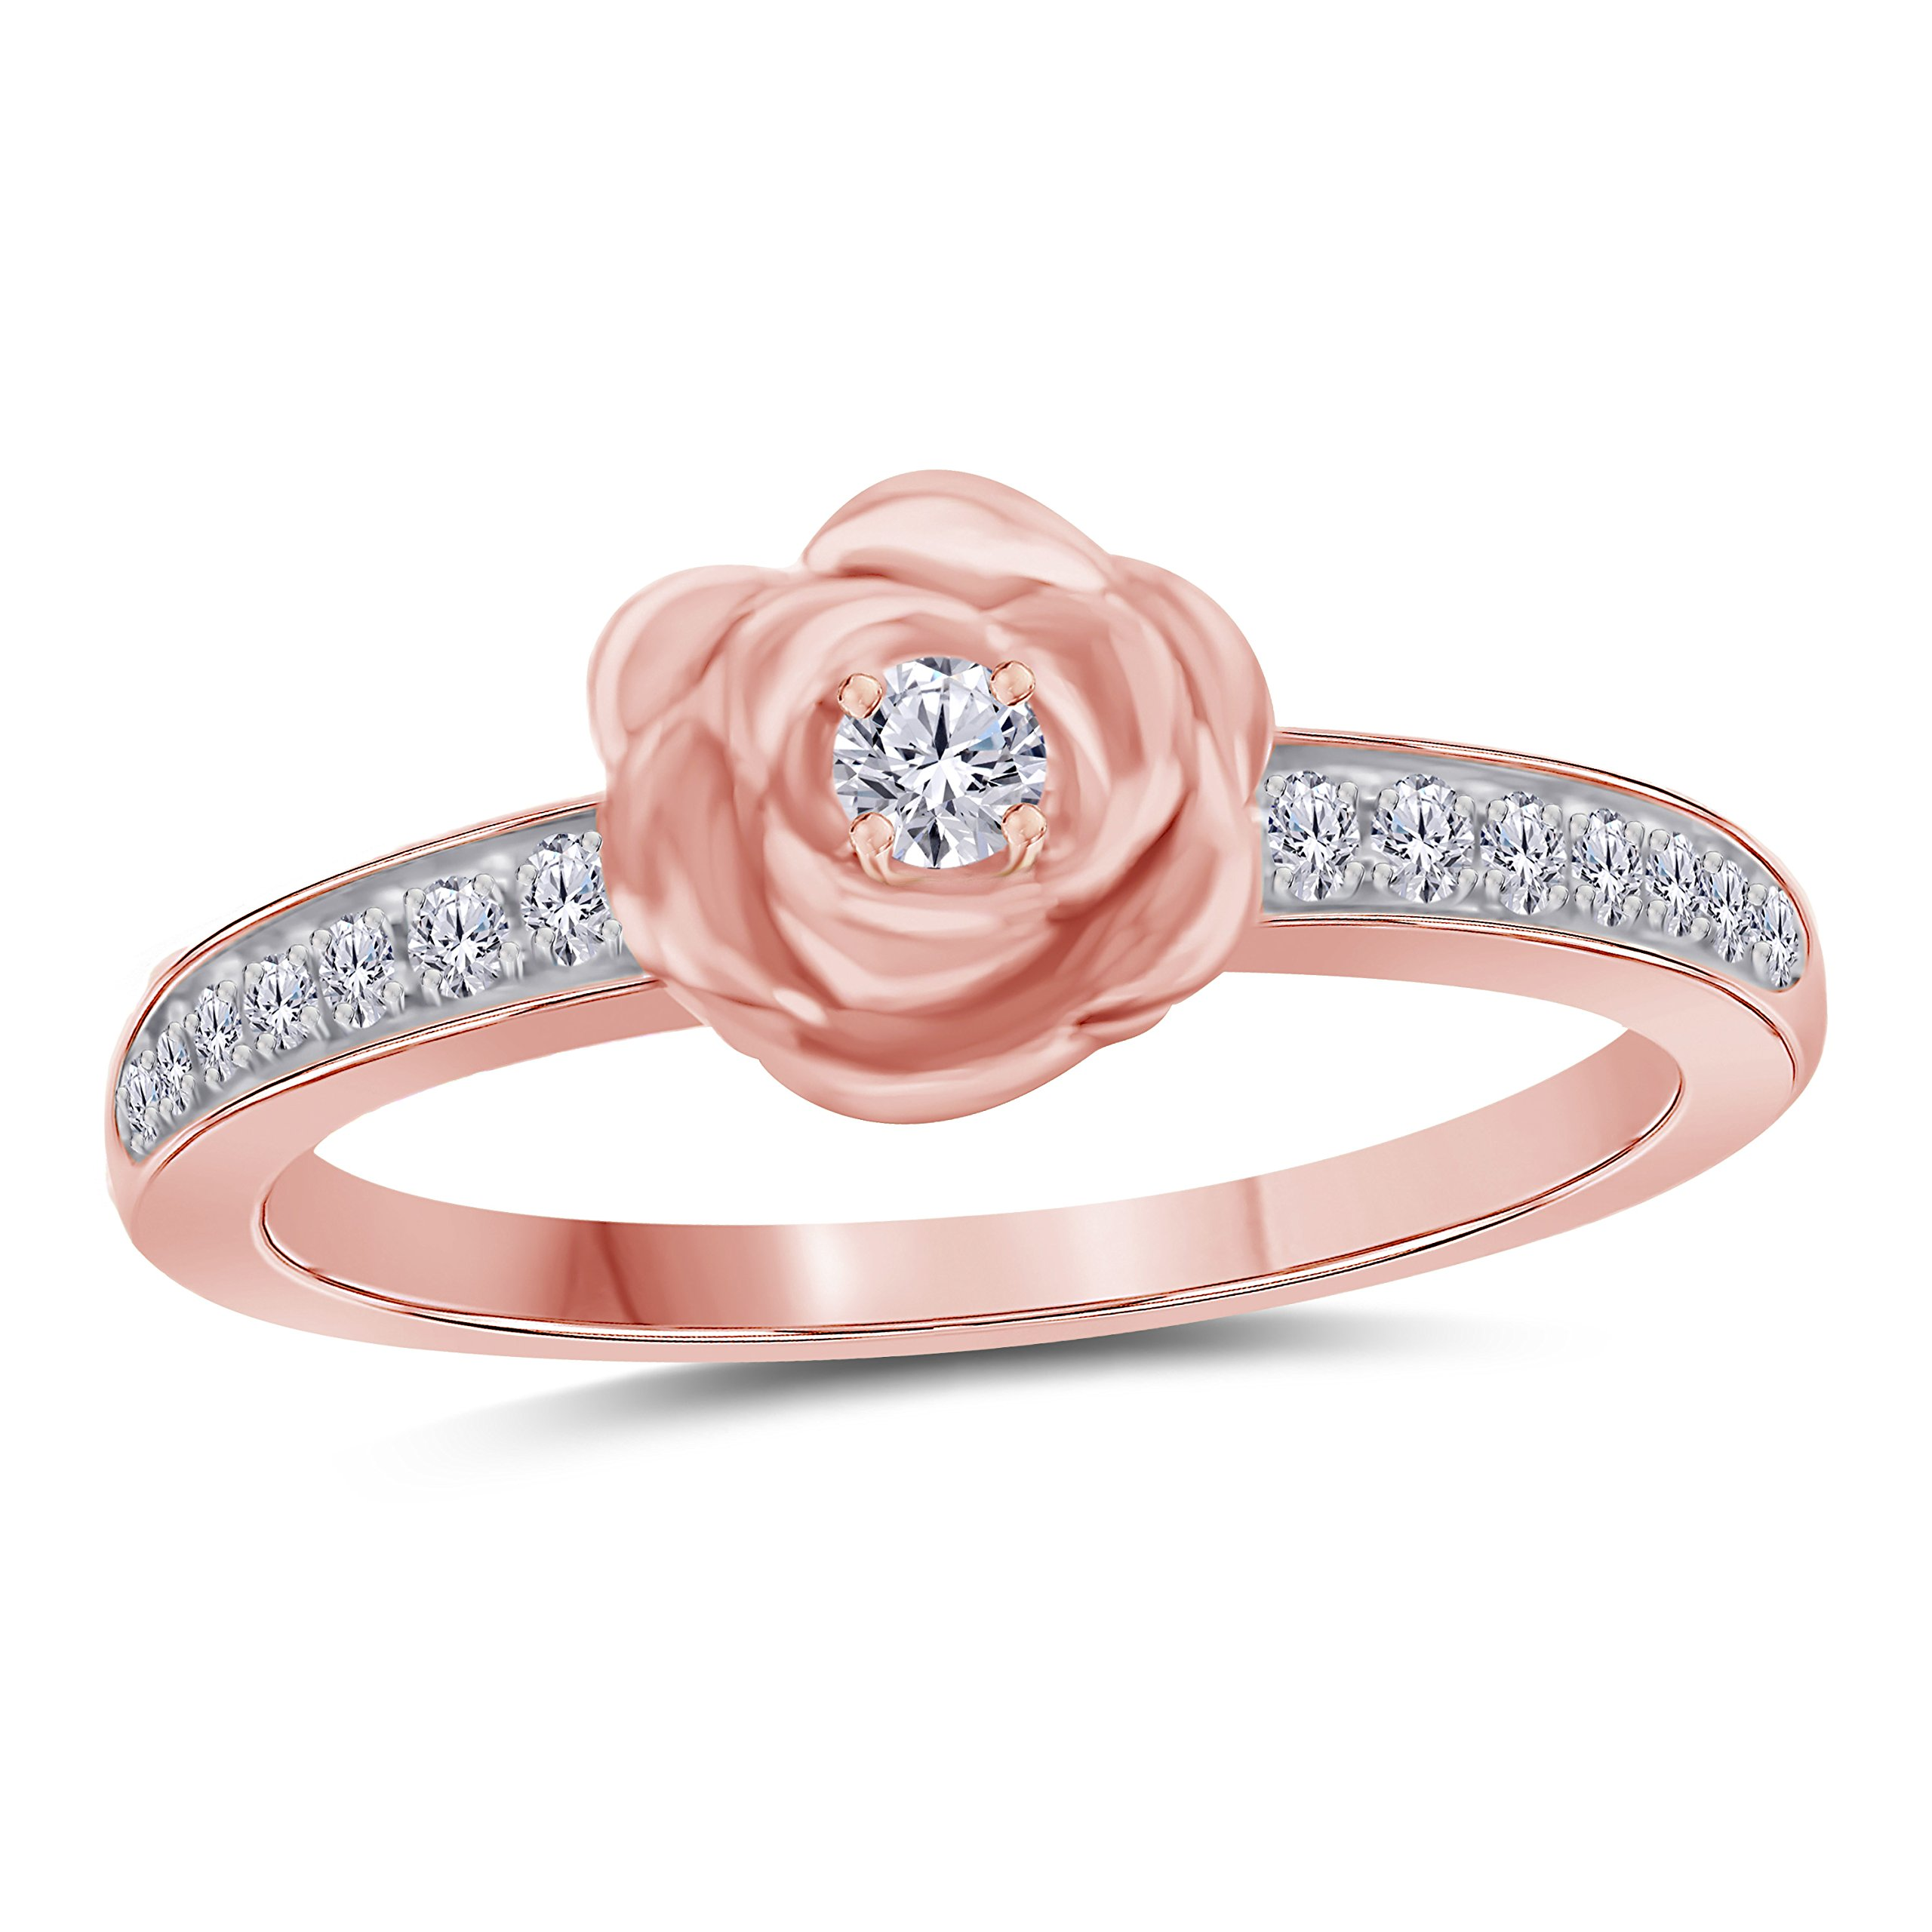 14K Rose Gold Plated Alloy Round Cut White Cubic Zirconia Rose Flower Design Fashion Ring Women's Jewelry